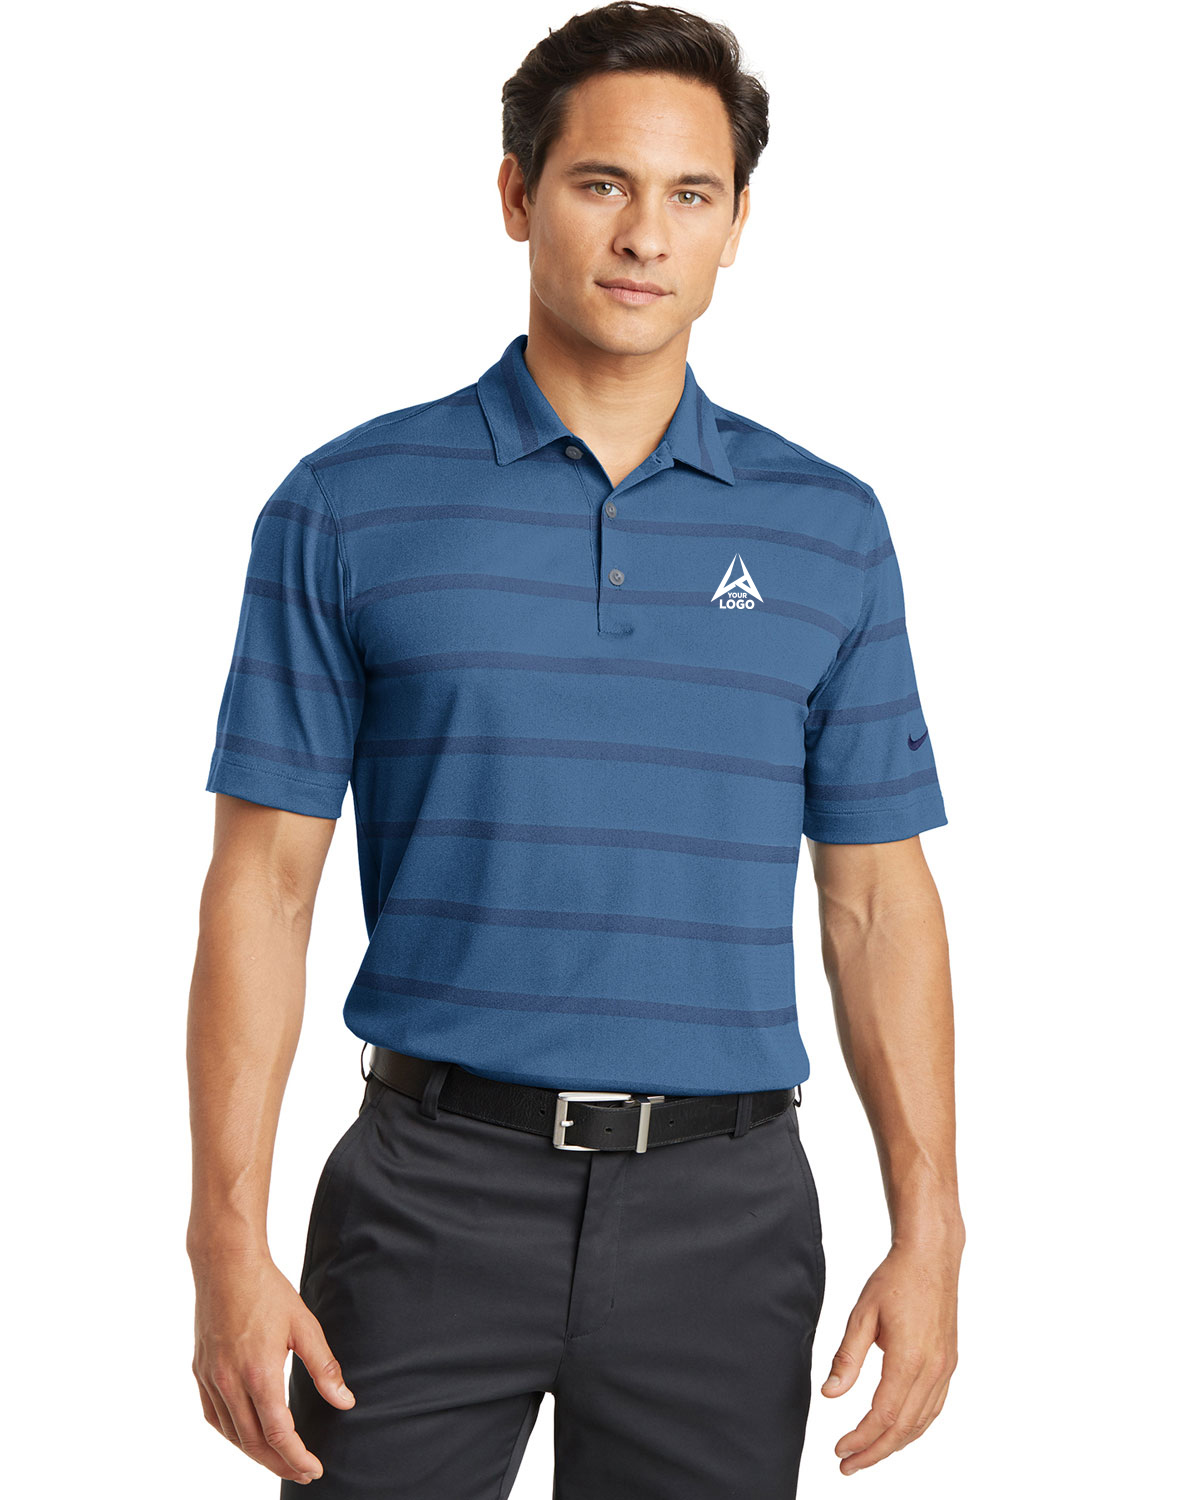 Nike Golf 677786 Mens Dri-FIT Polo Shirt